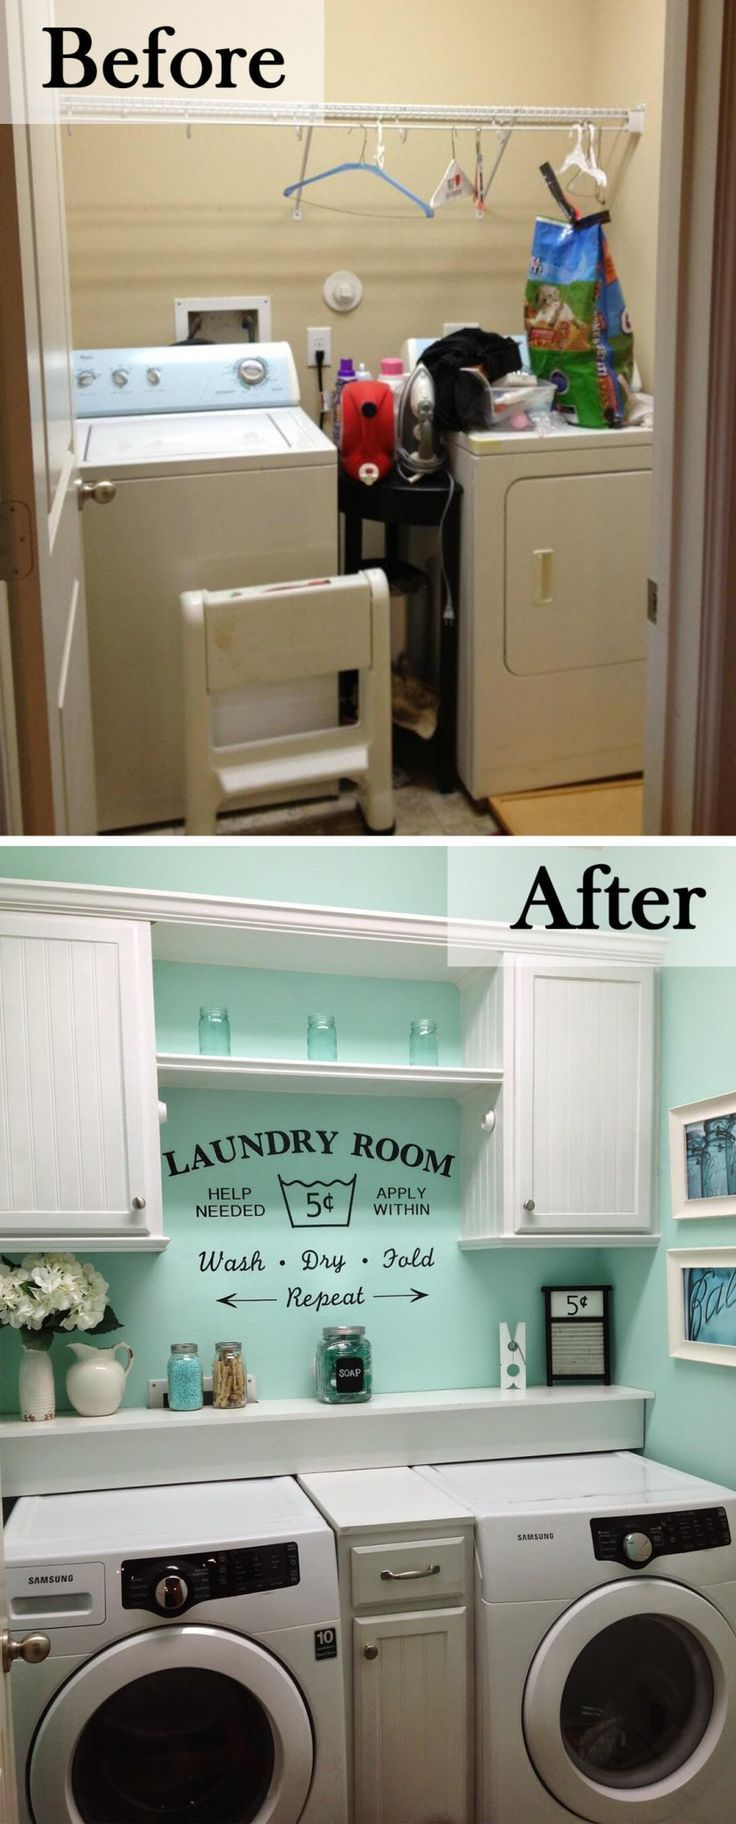 23 Before And After Budget Friendly Laundry Room Makeover Ideas That Will Amaze You Organization Tips Cabinets